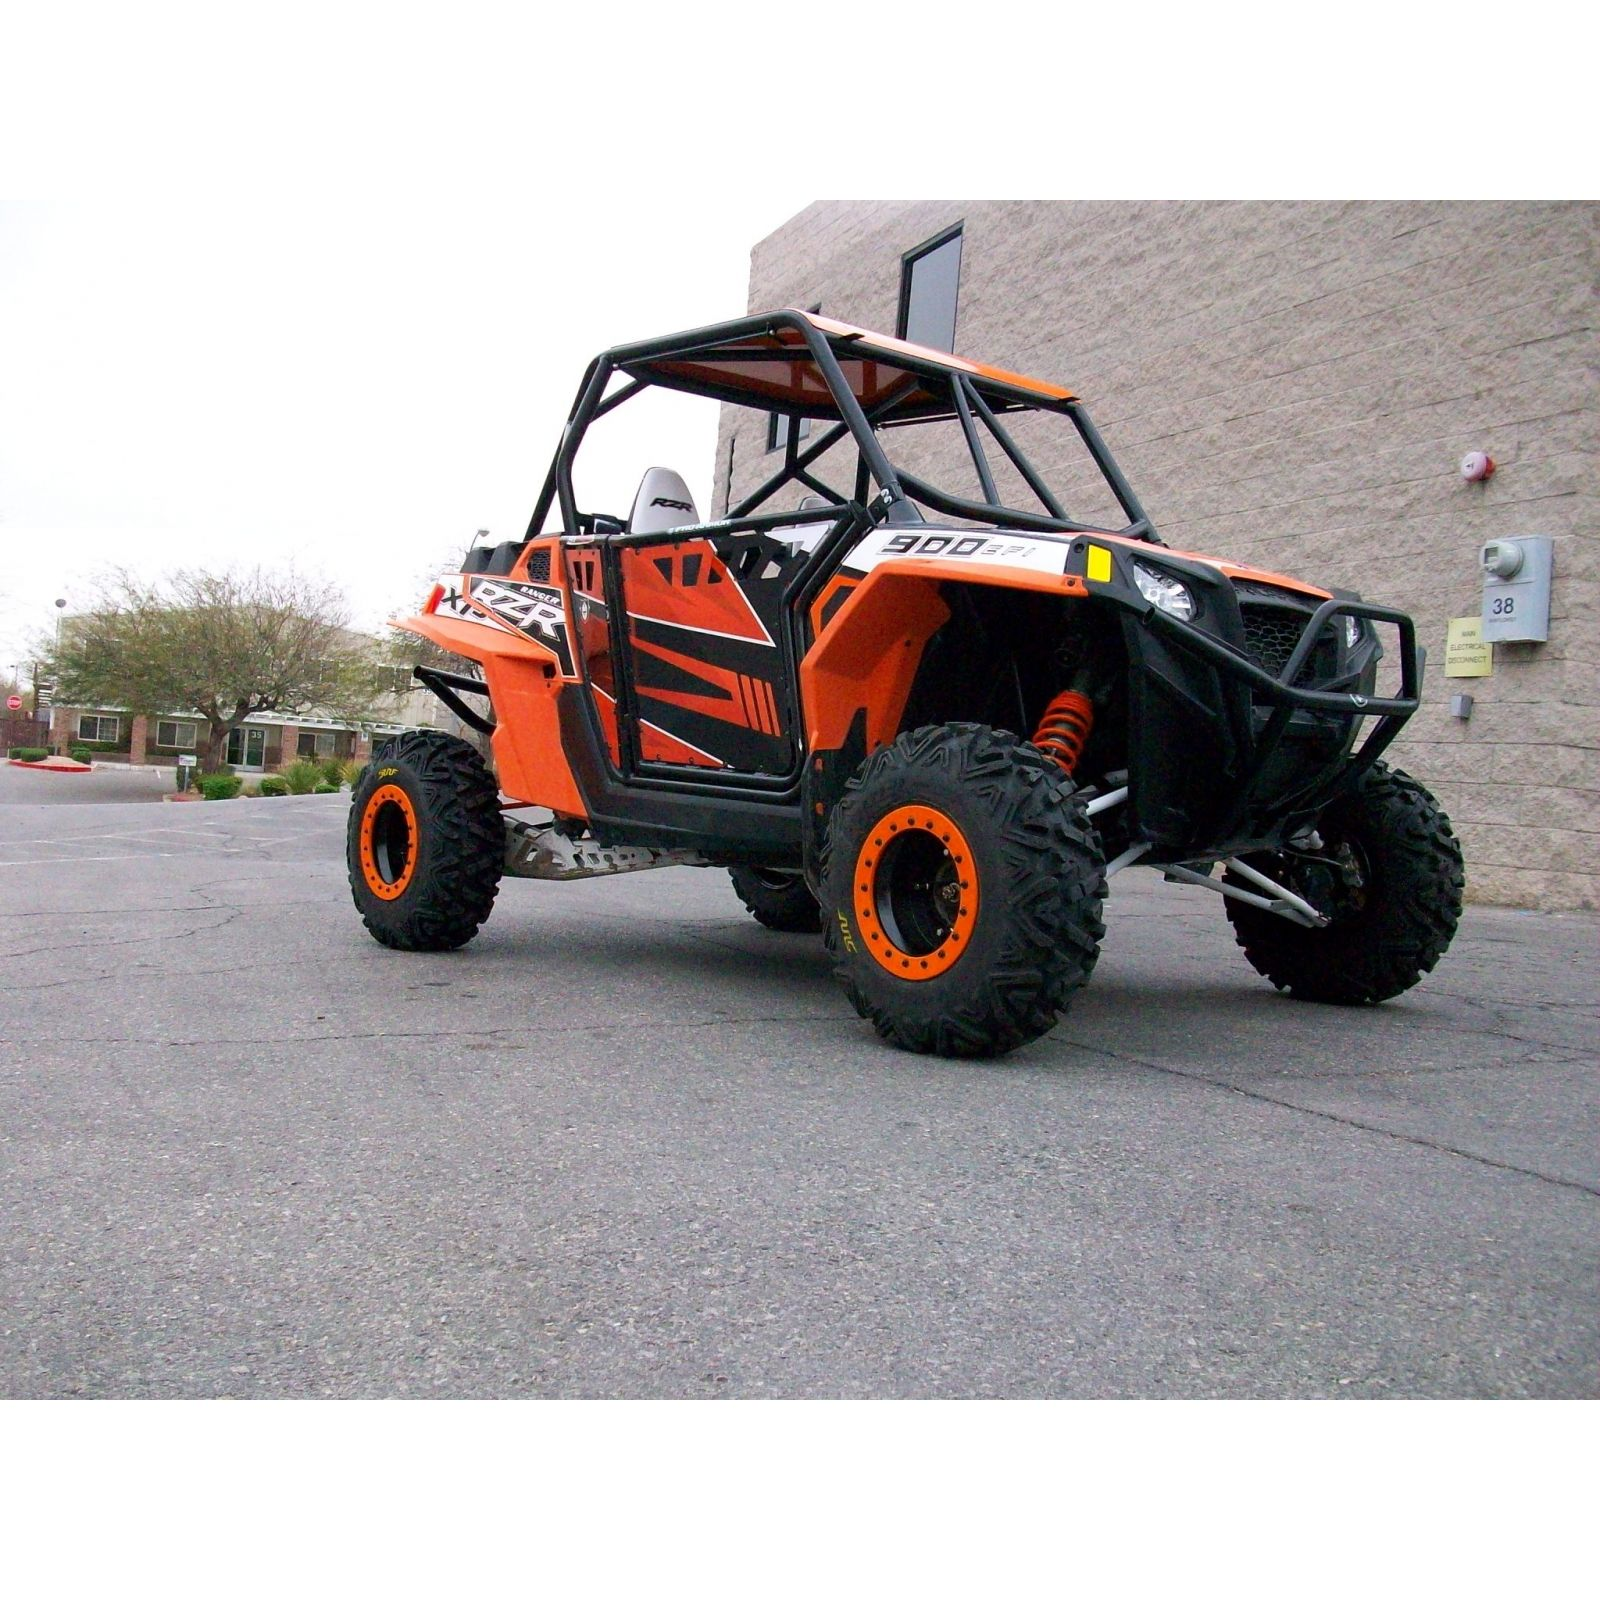 Polaris Rzr 570 800 Xp900 Roll Cage With Aluminum Roof